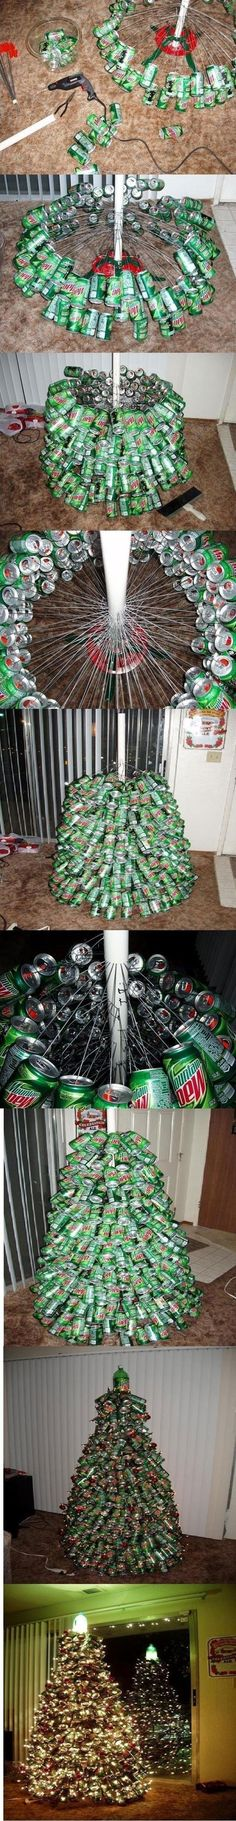 Mountain Dew Christmas Tree. Worst thing I've seen in a while.